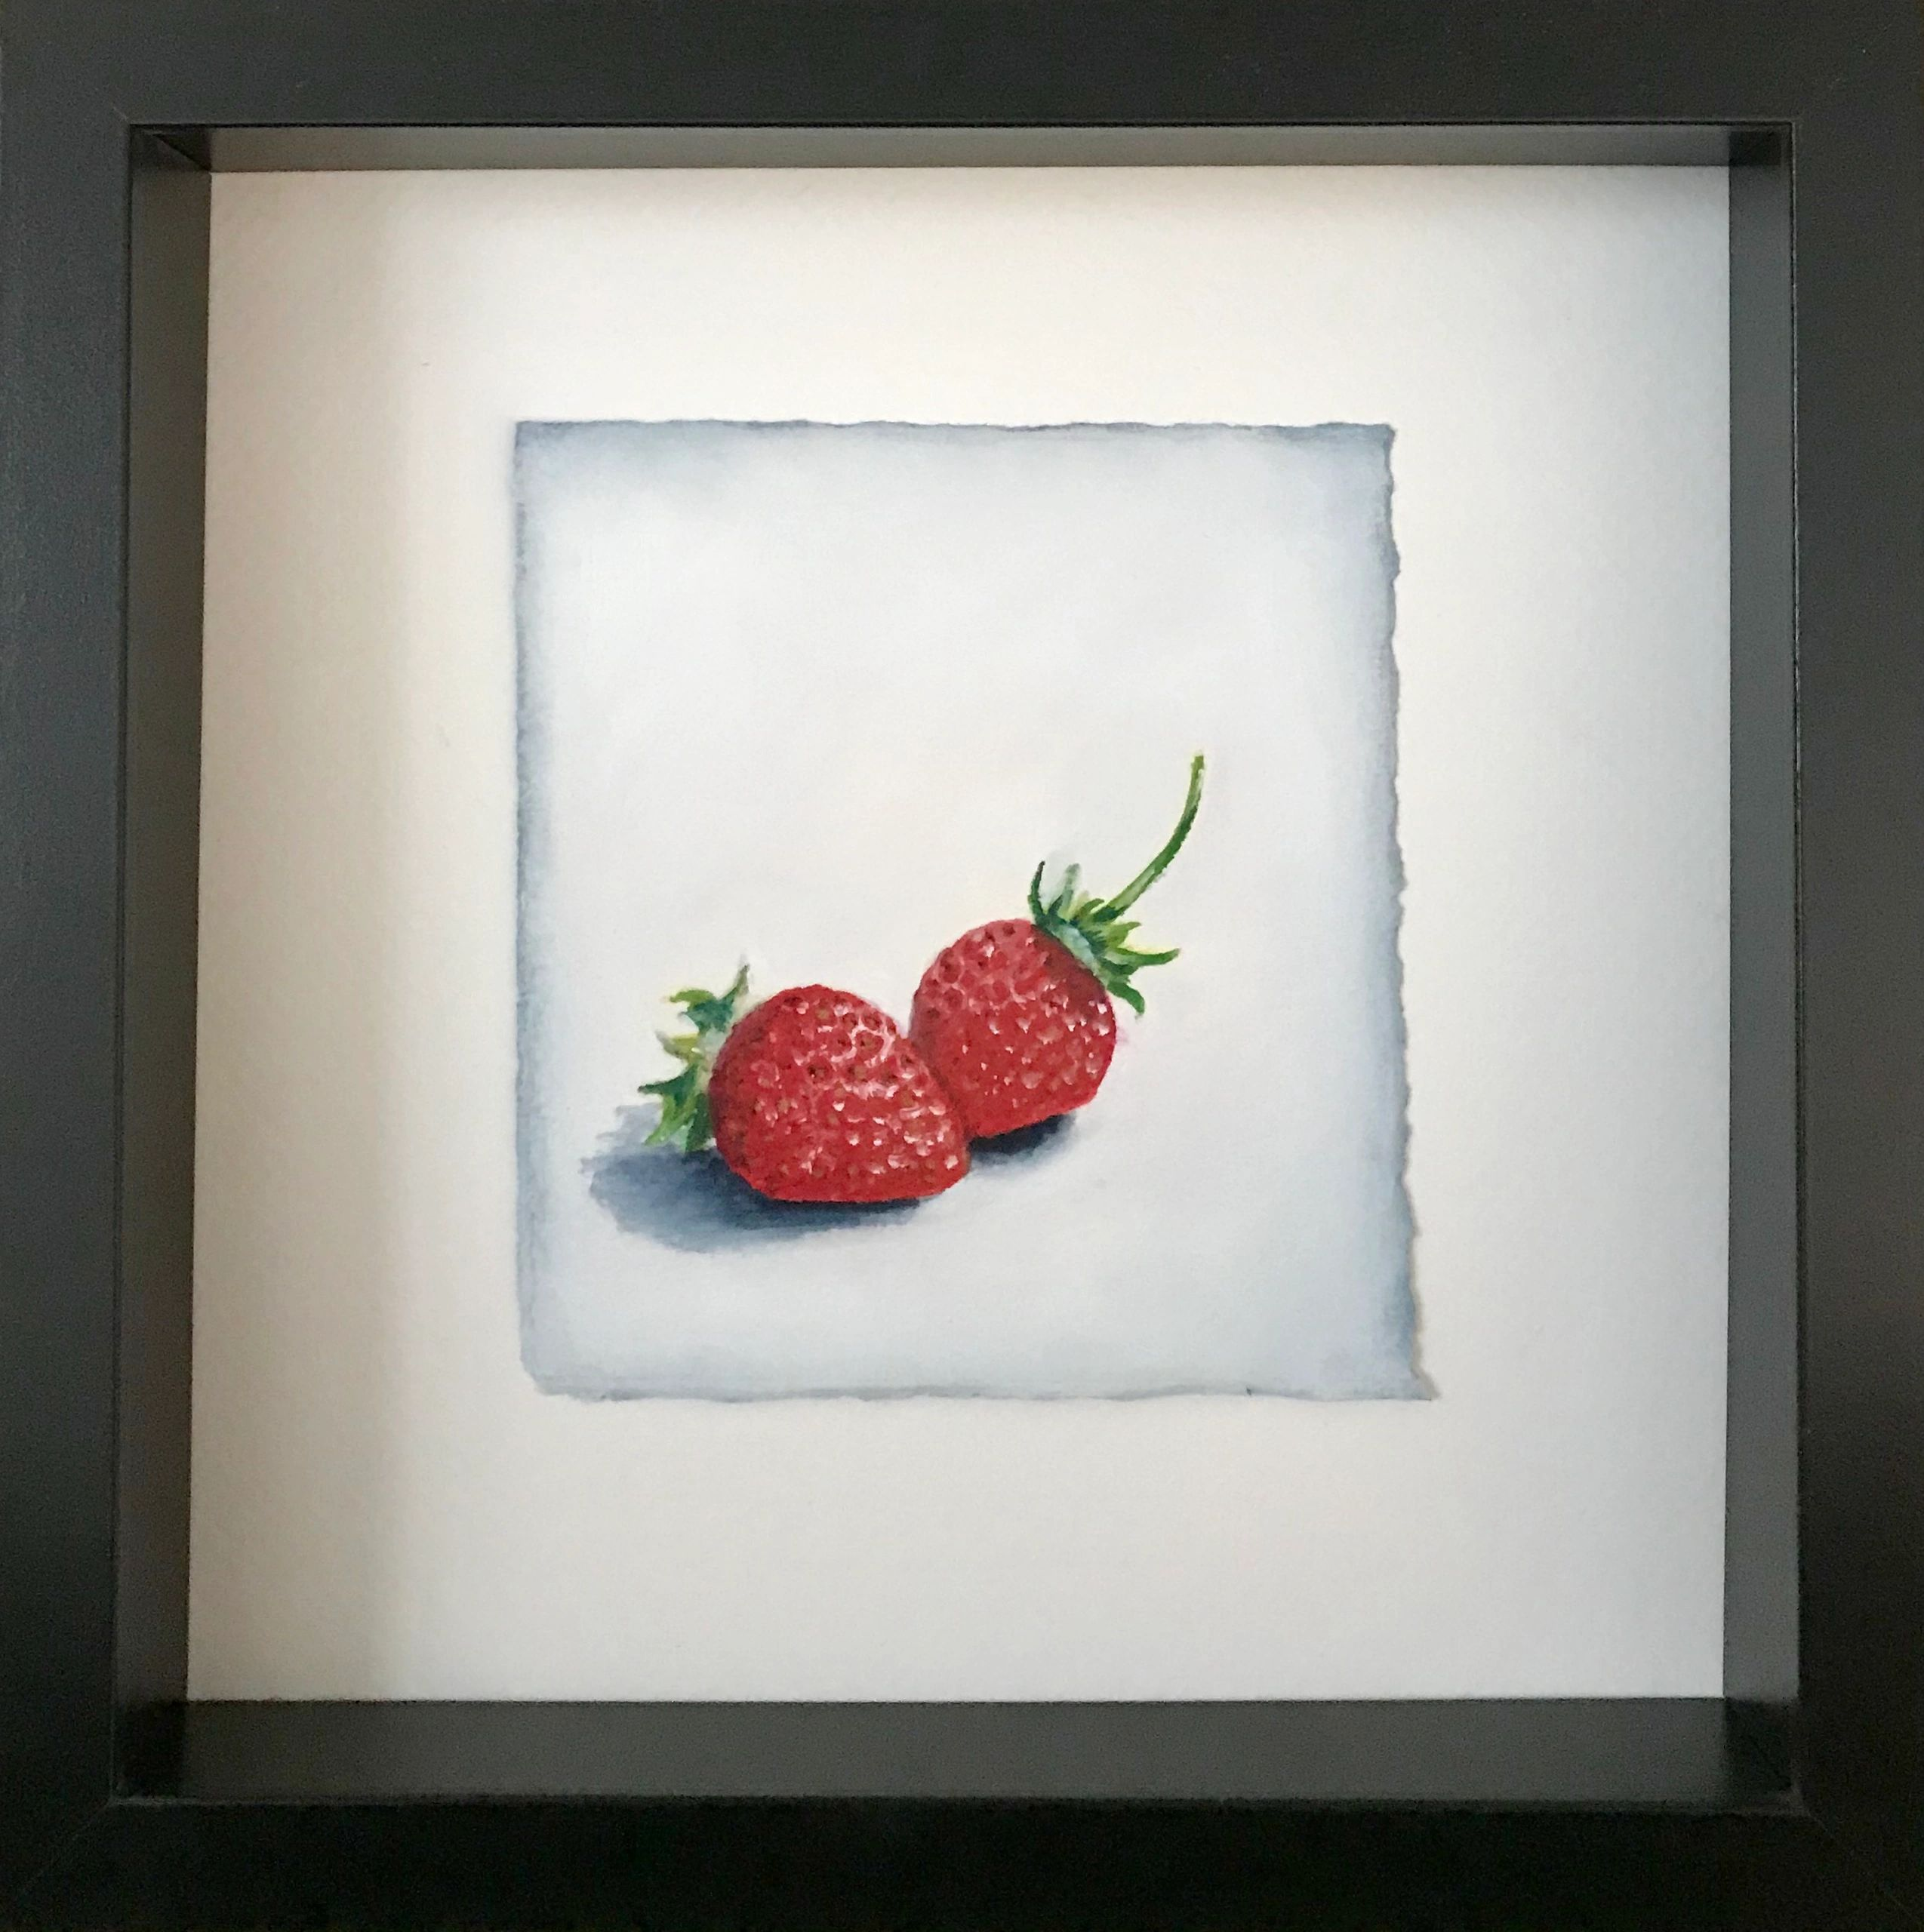 "{""blocks"":[{""key"":""9tdup"",""text"":""Wild Strawberries oil on paper & framed 10x10 (choice of white or black frame) Custom orders available"",""type"":""unstyled"",""depth"":0,""inlineStyleRanges"":[],""entityRanges"":[],""data"":{}}],""entityMap"":{}}"